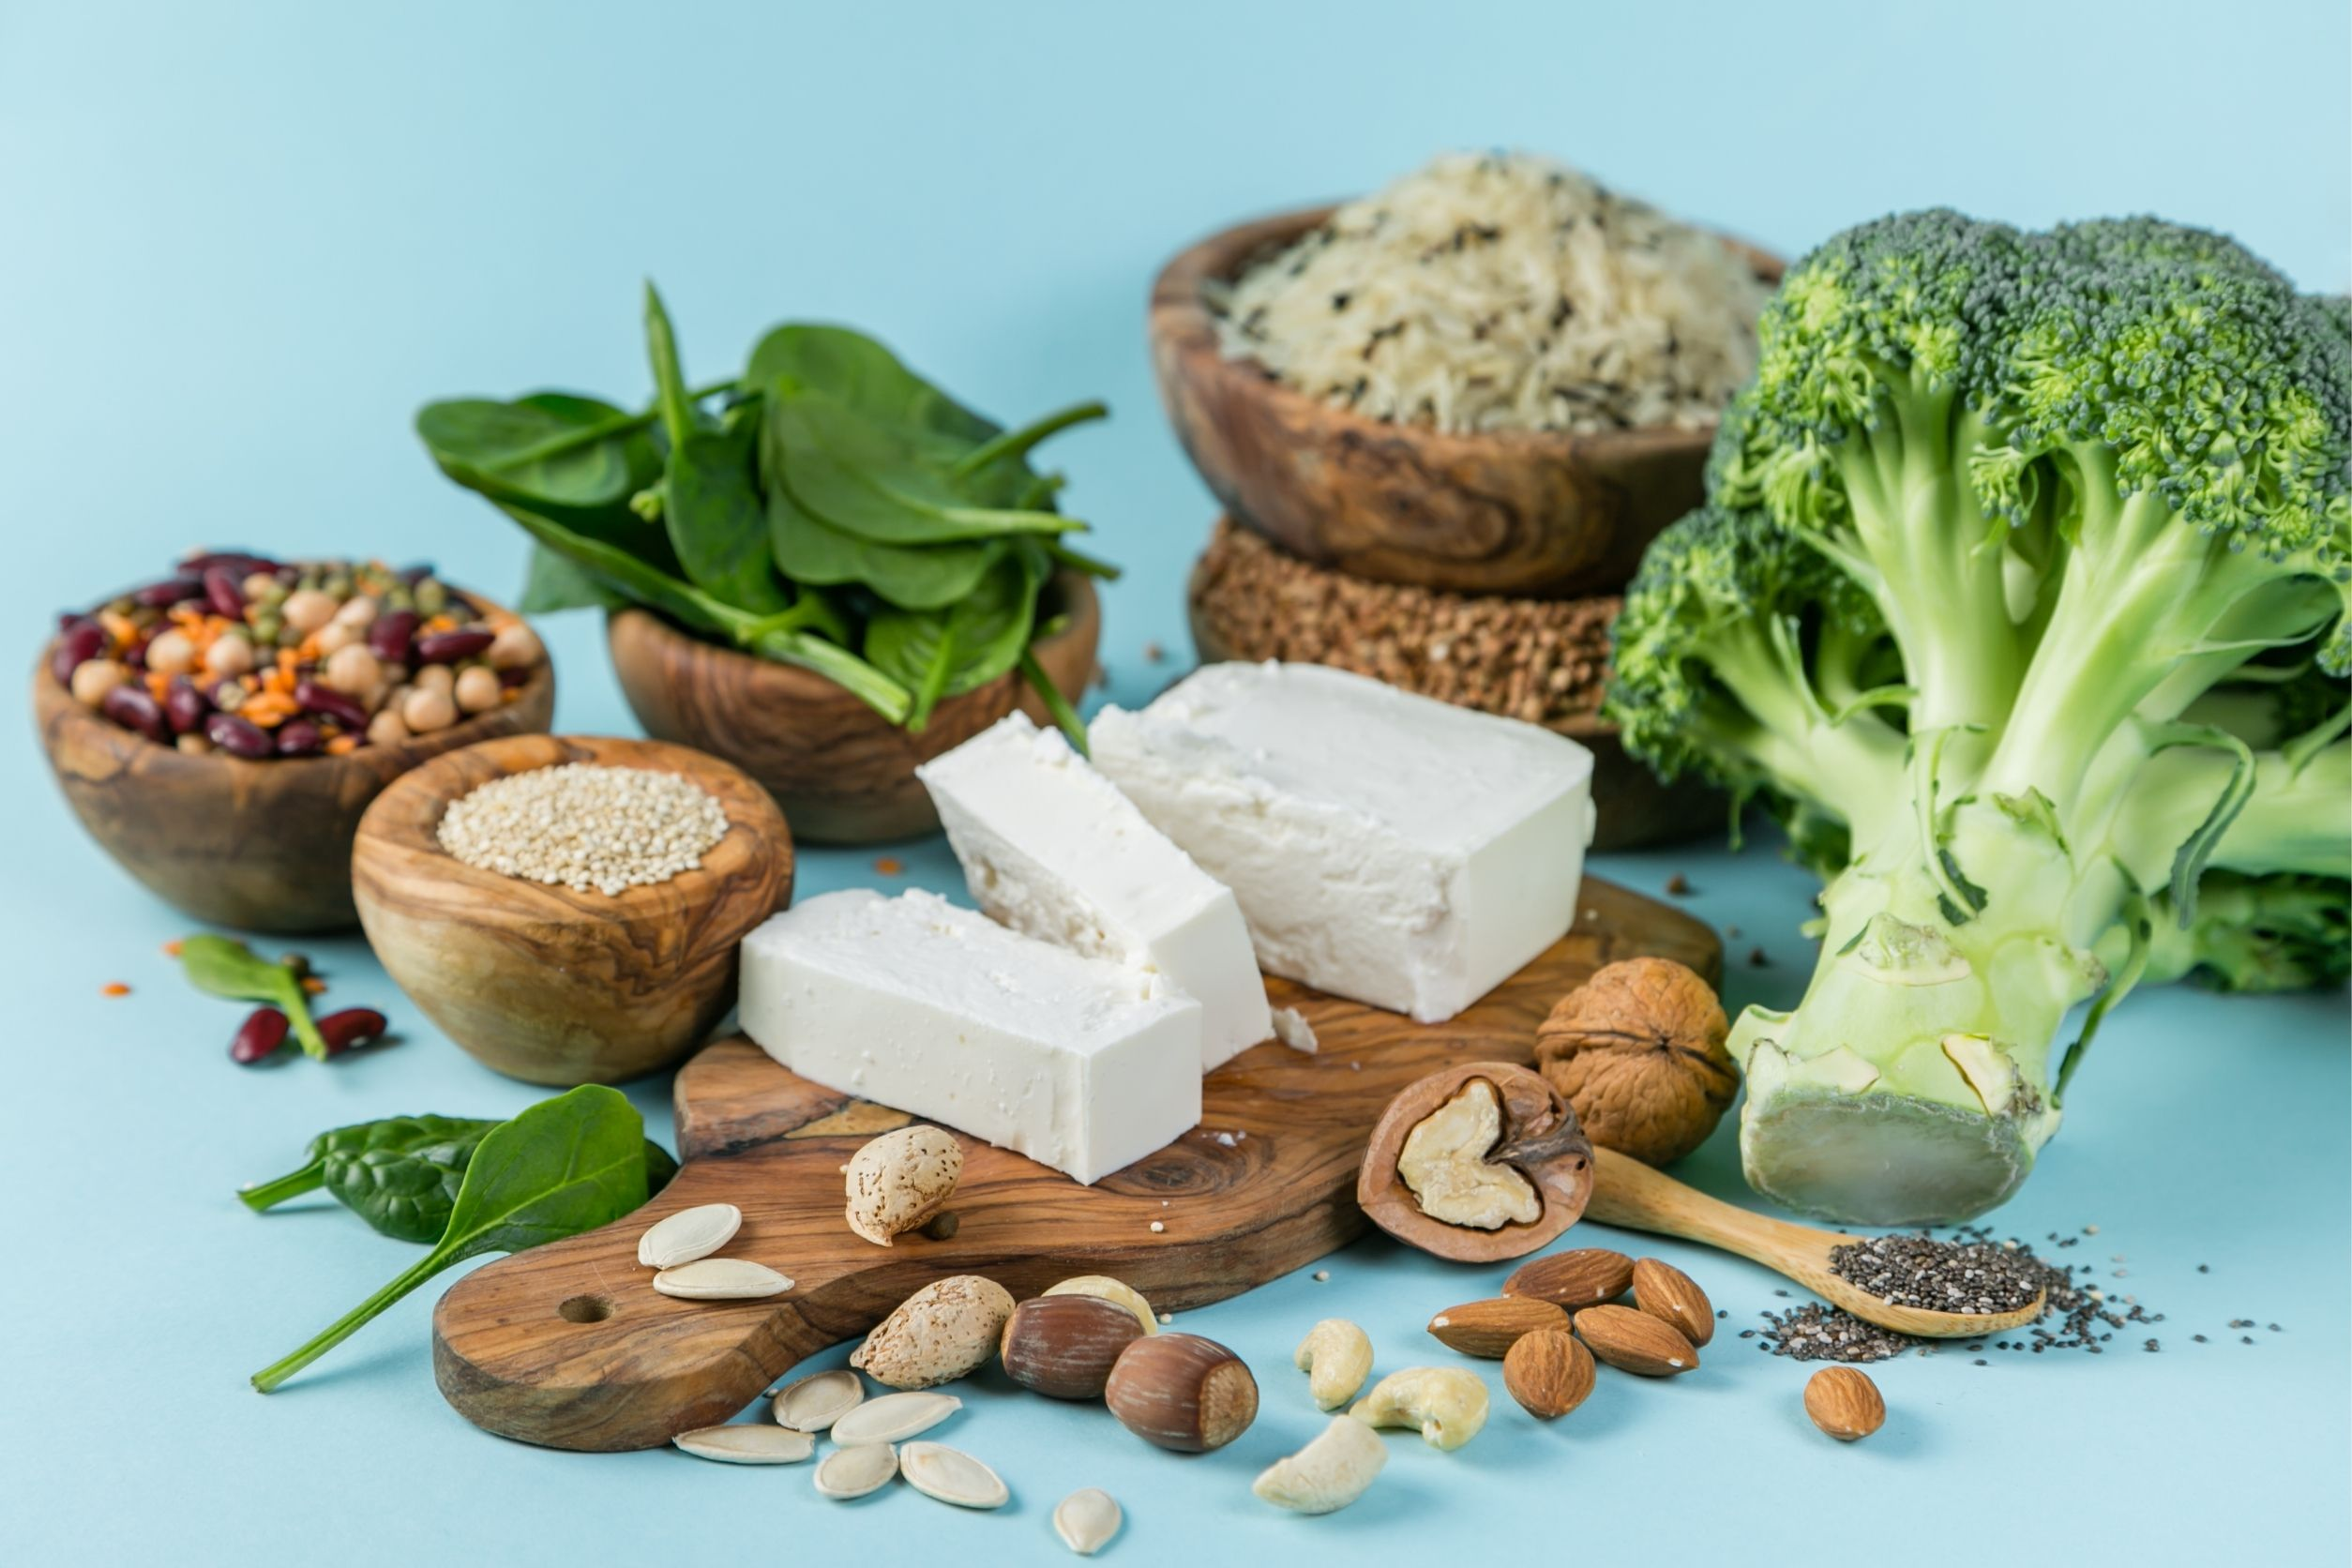 Vegetarian diet foods like broccoli, tofu, nuts, spinach, and rice